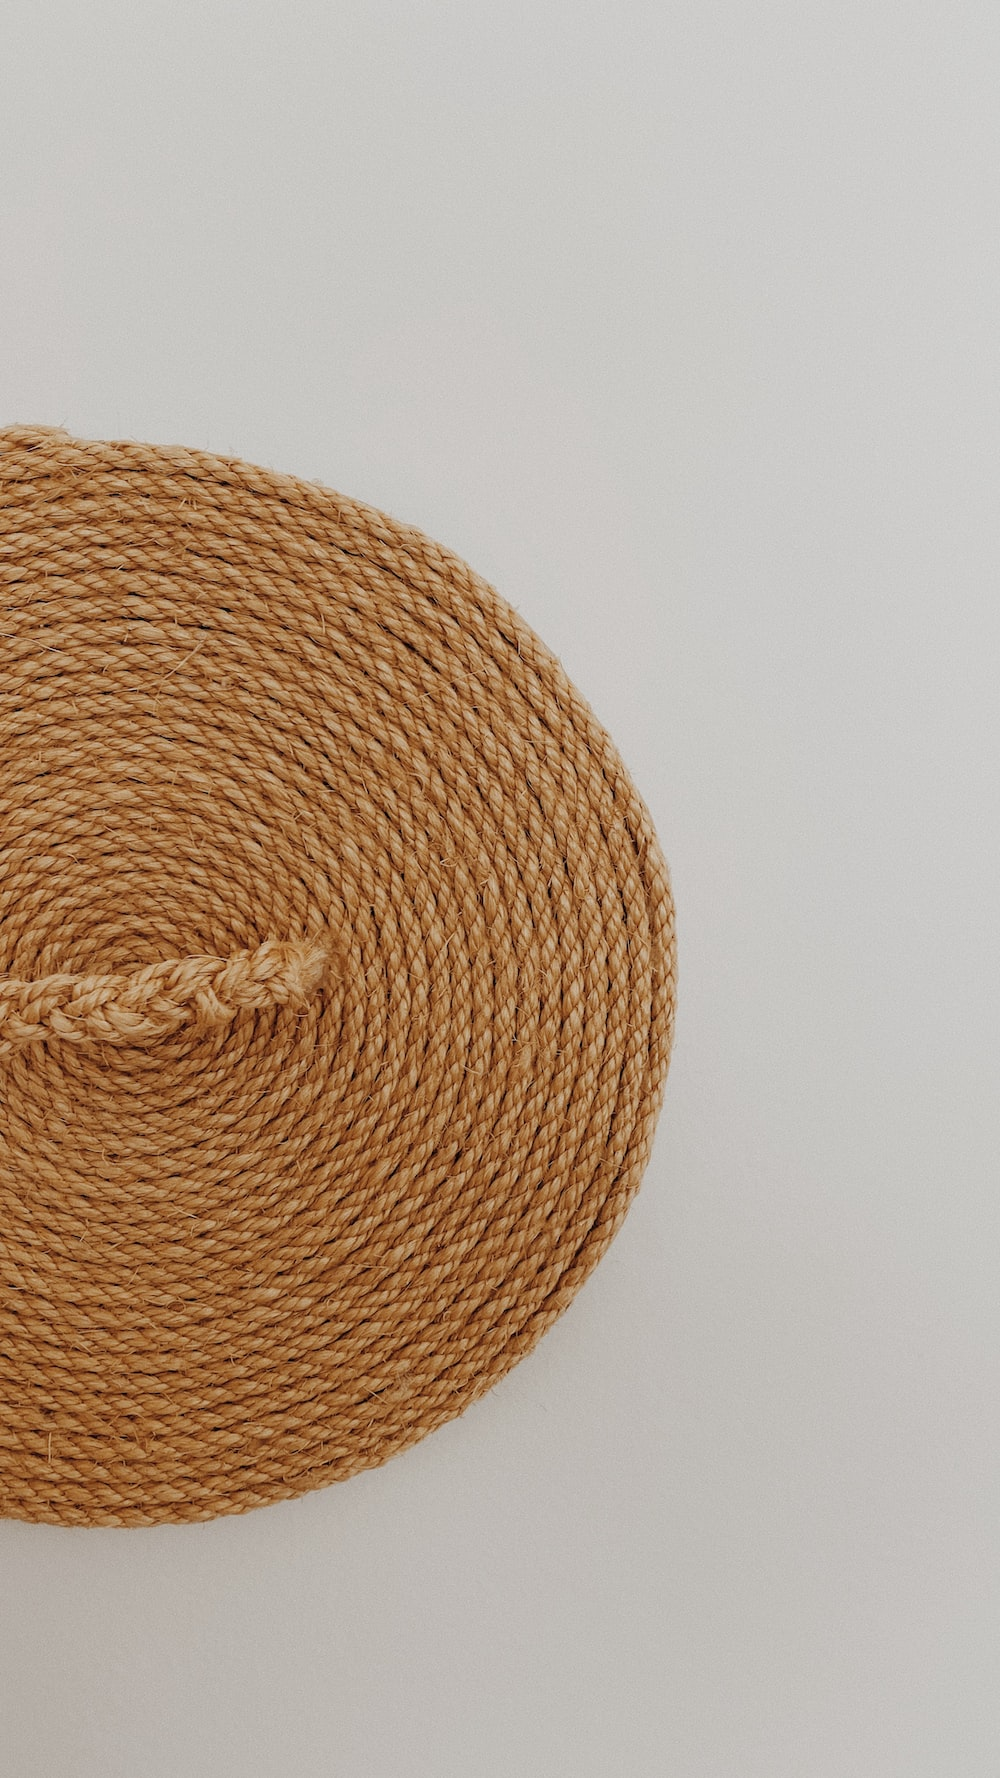 brown woven round basket on white surface